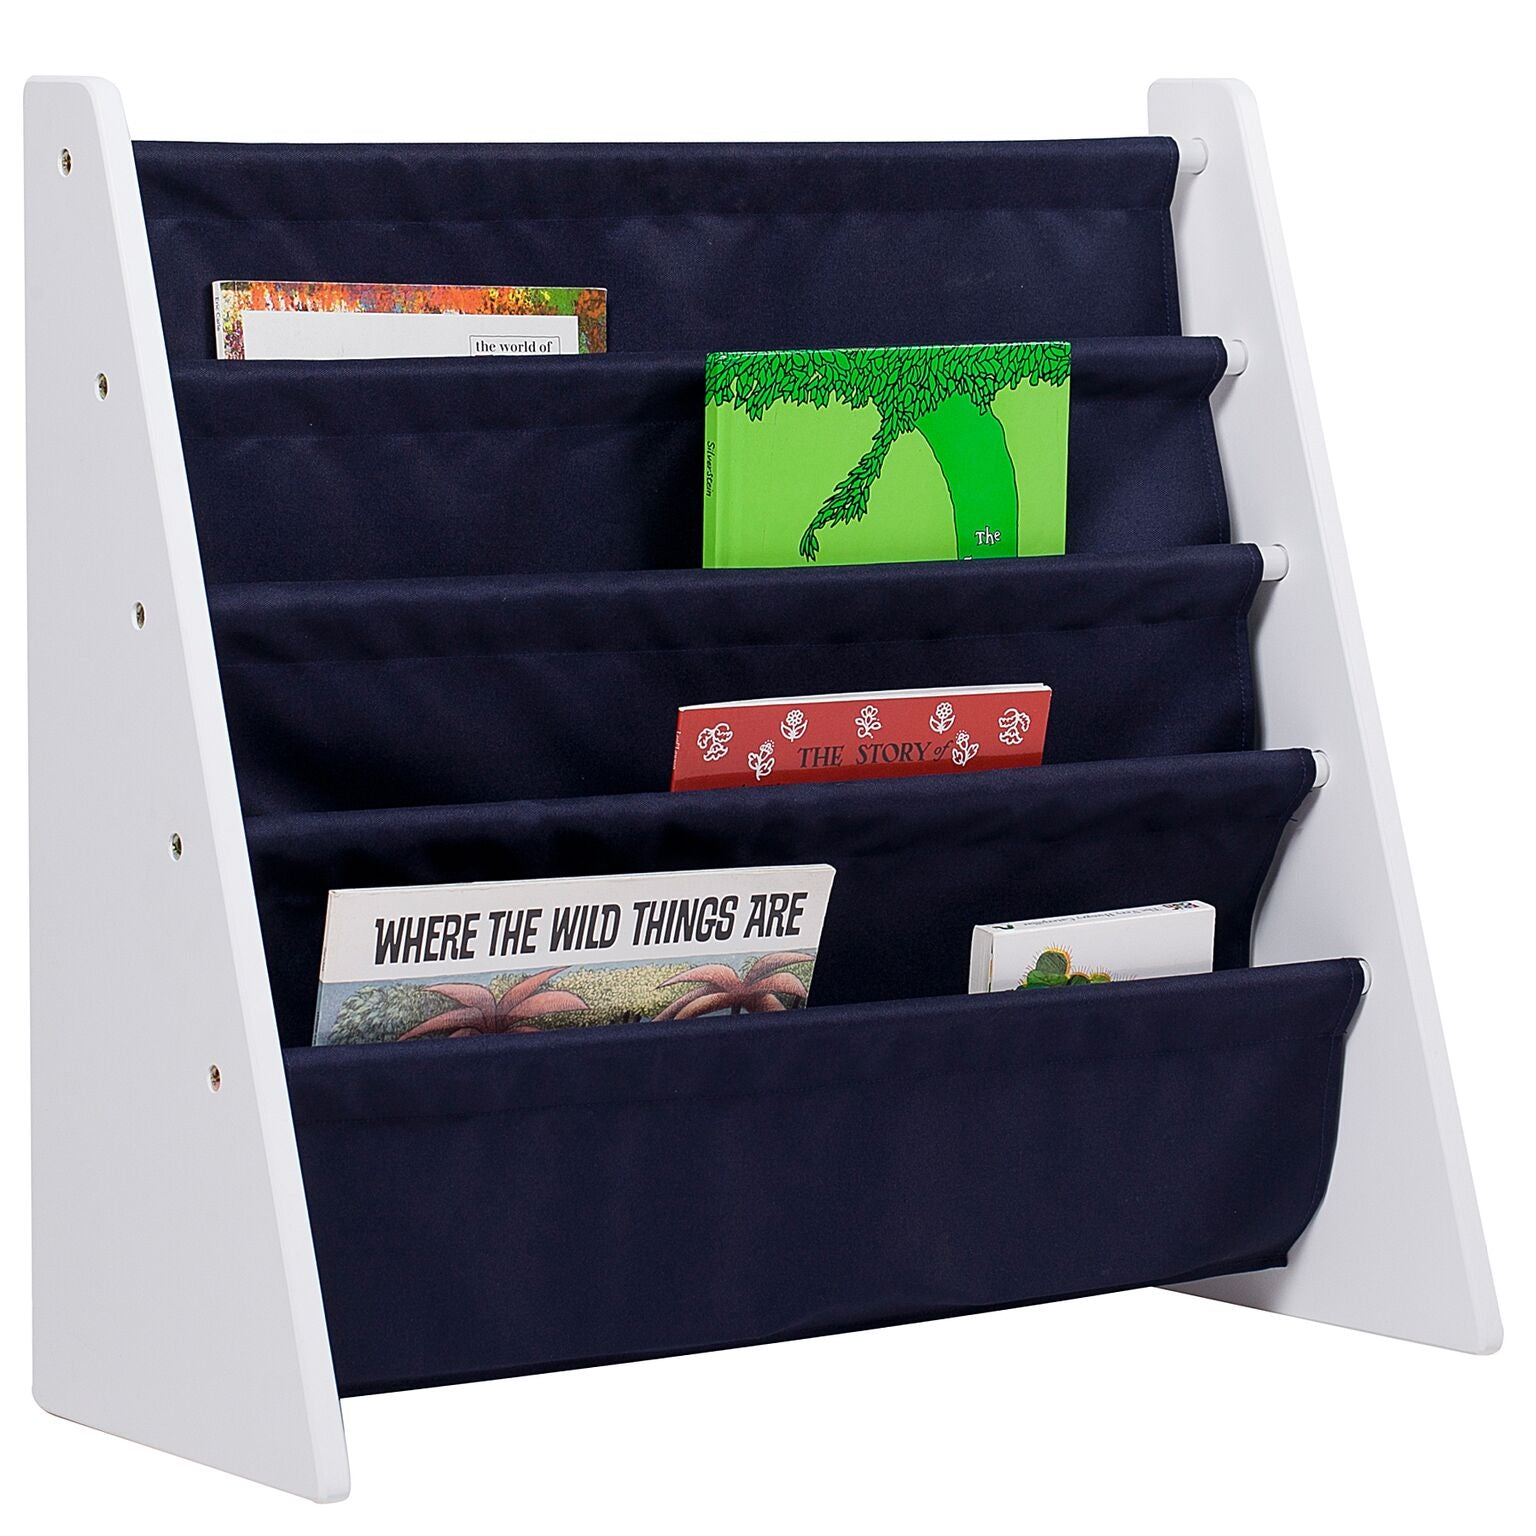 Classic Blue Sling Bookcase - White